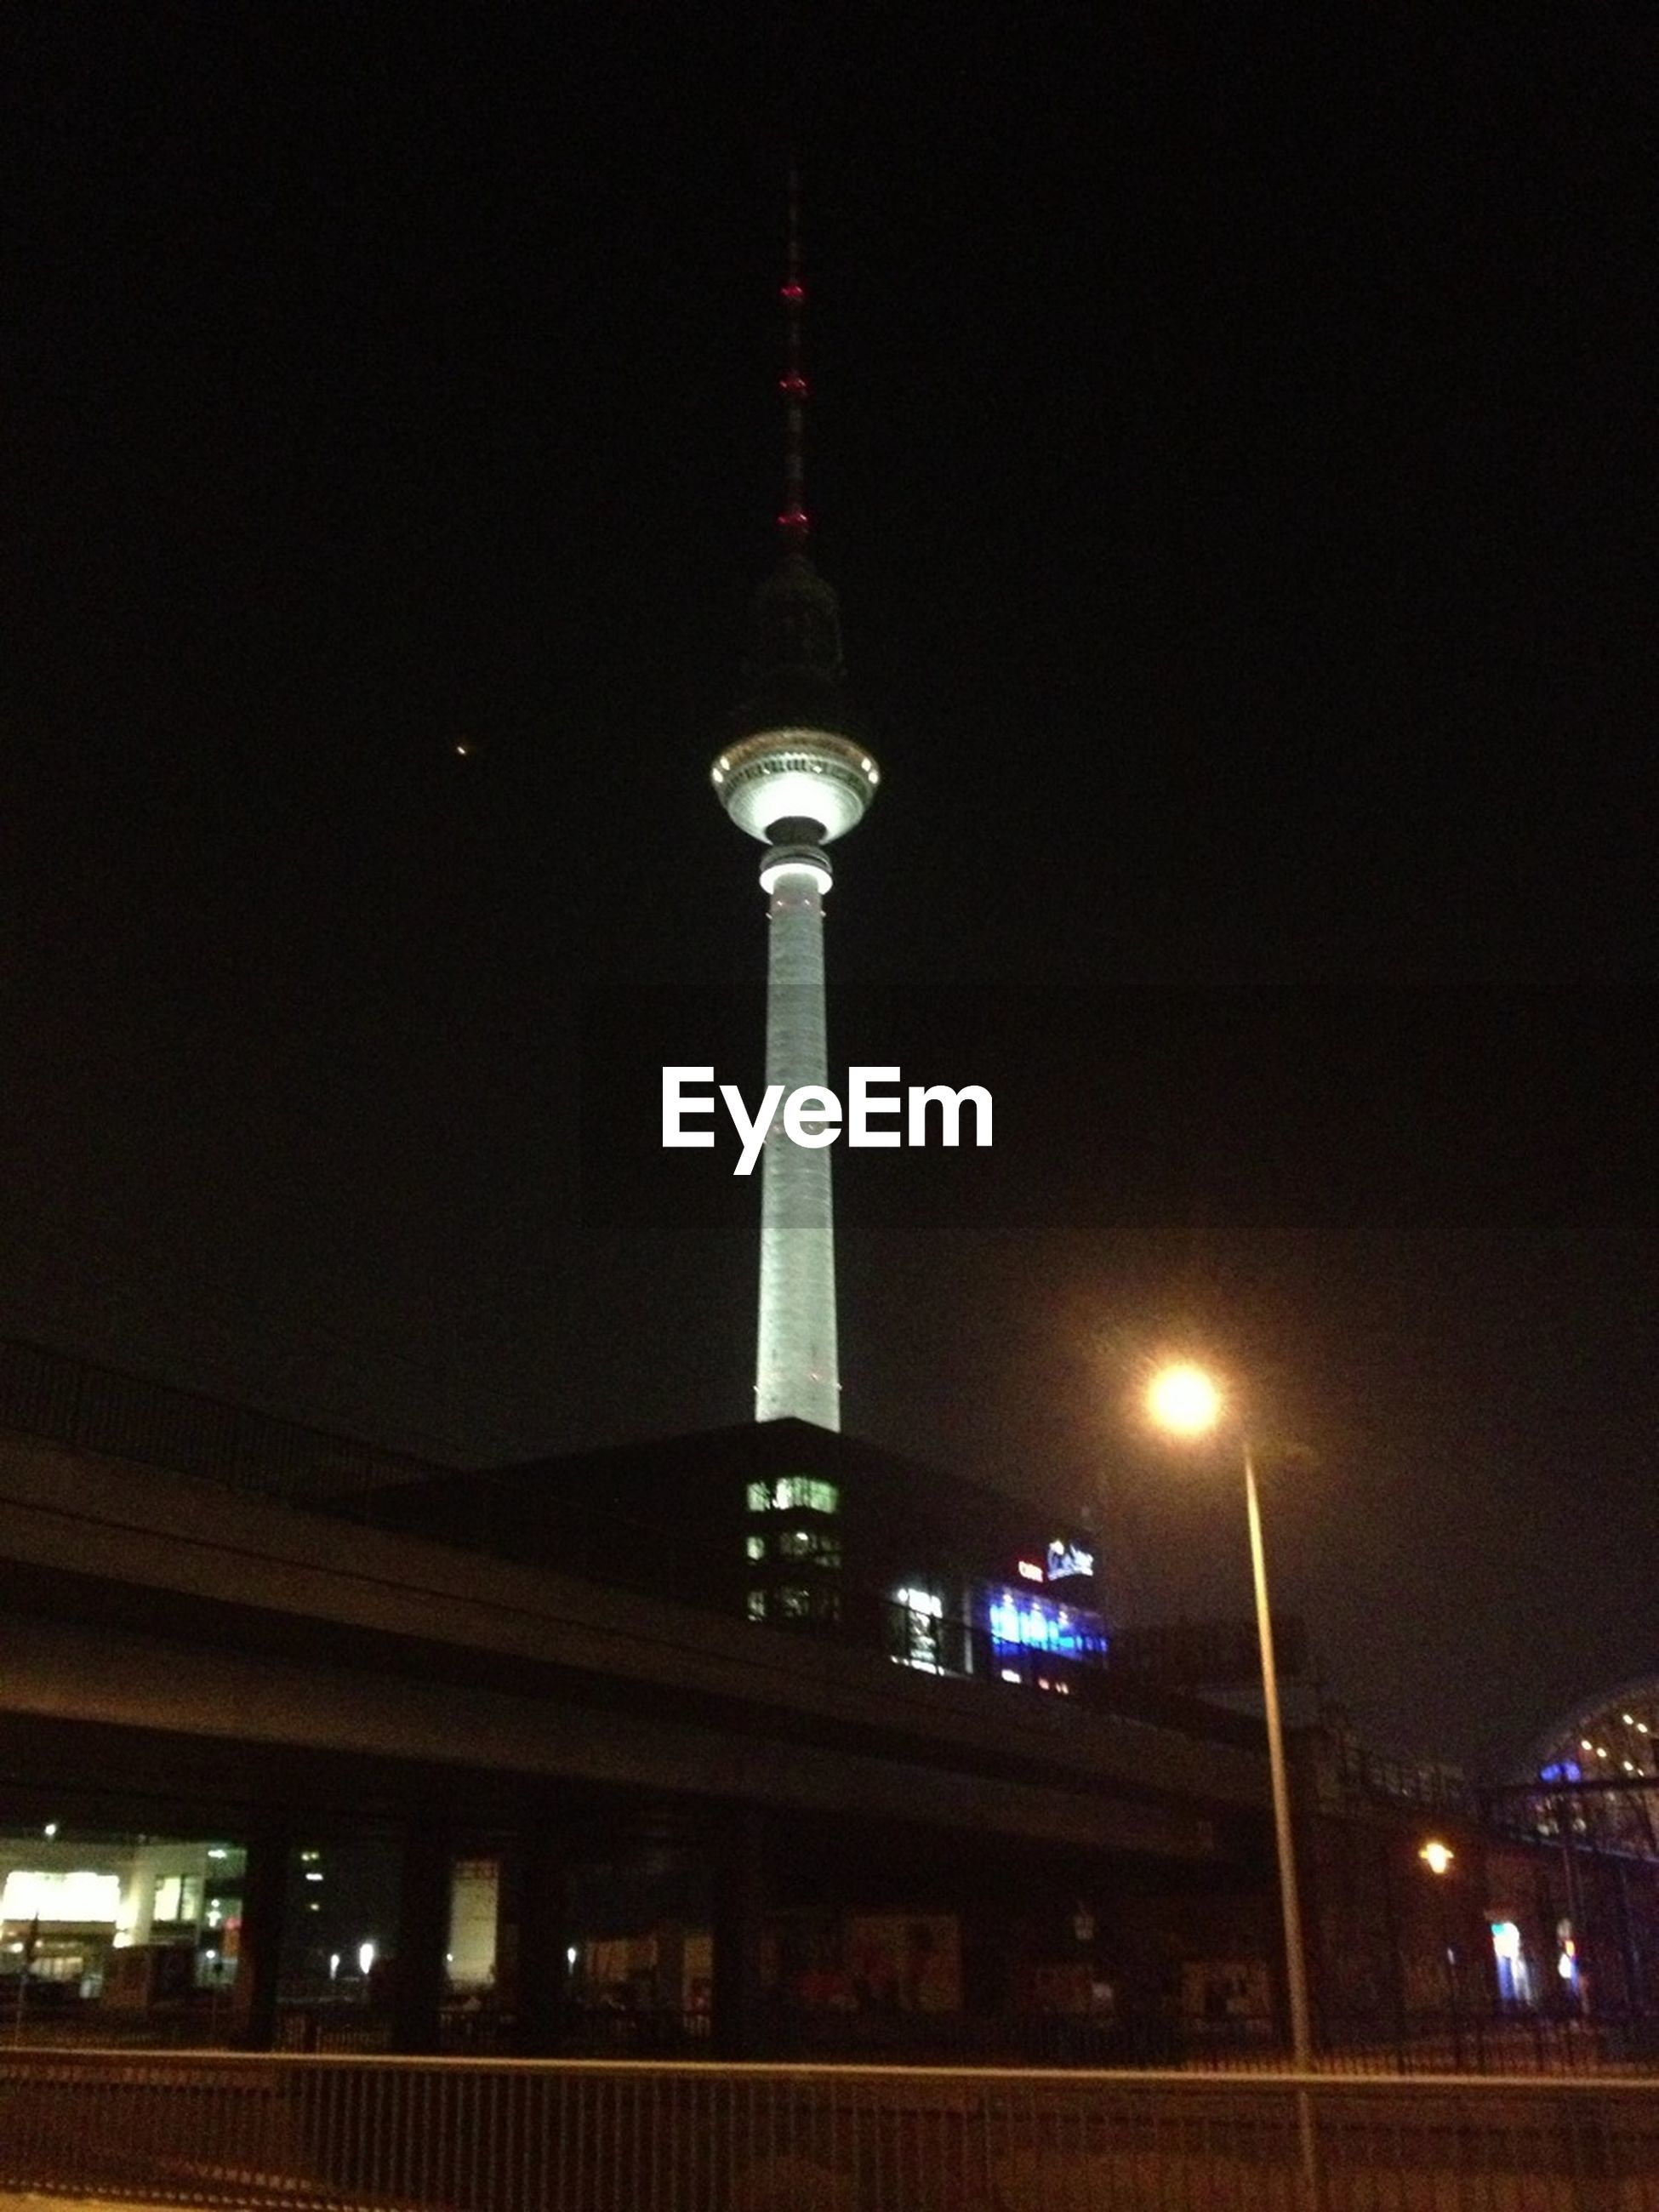 architecture, communications tower, tower, built structure, illuminated, tall - high, building exterior, night, communication, low angle view, spire, fernsehturm, international landmark, travel destinations, capital cities, city, television tower, culture, famous place, tourism